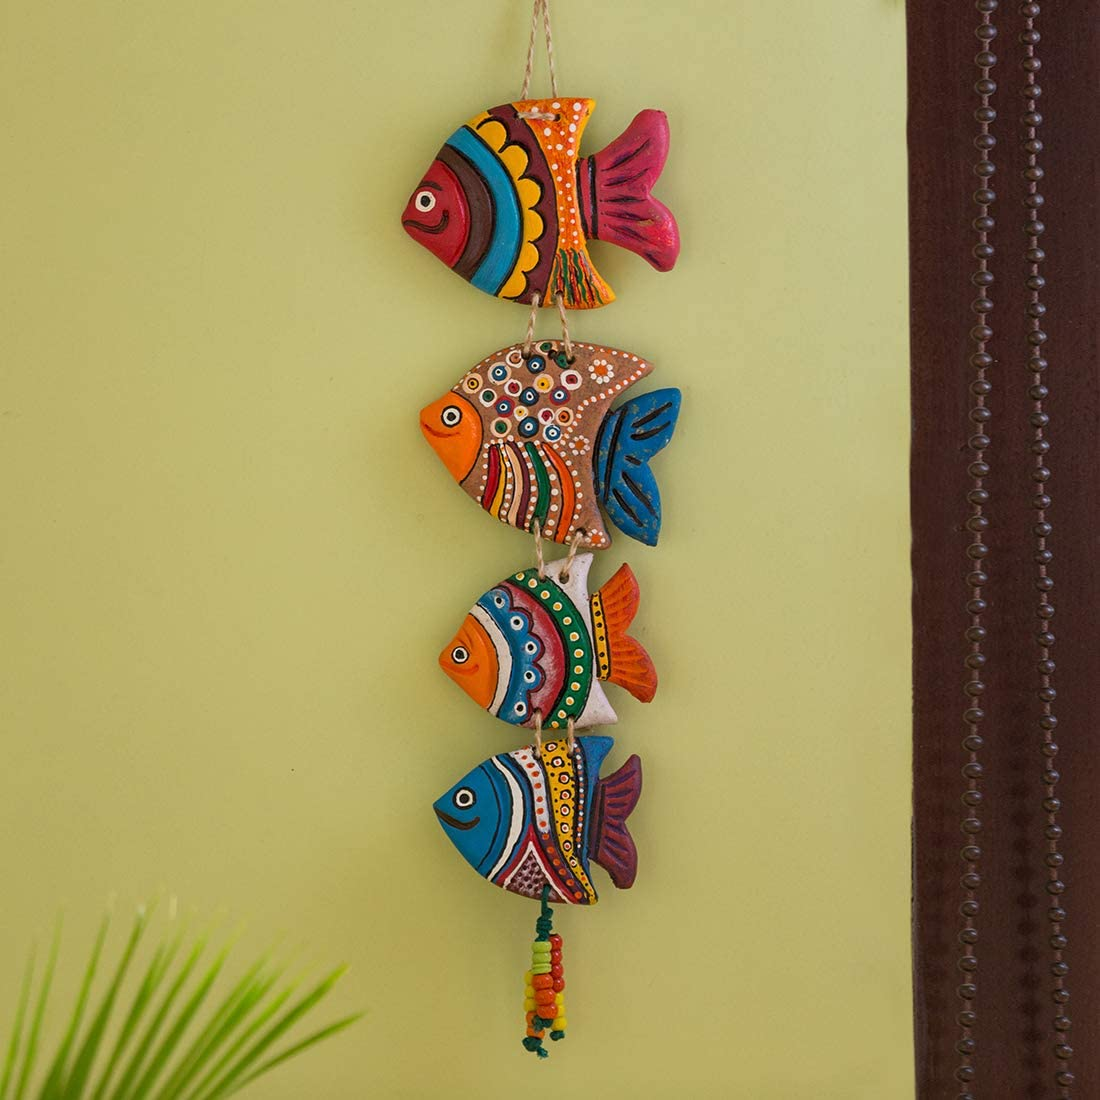 ExclusiveLane Fish Handmade and Hand-Painted Garden Decorative Wall Hanging in Terracotta - Balcony Decoration Hanging Decorative Items for Living Room Wall Décor Terracotta Decorative for Home